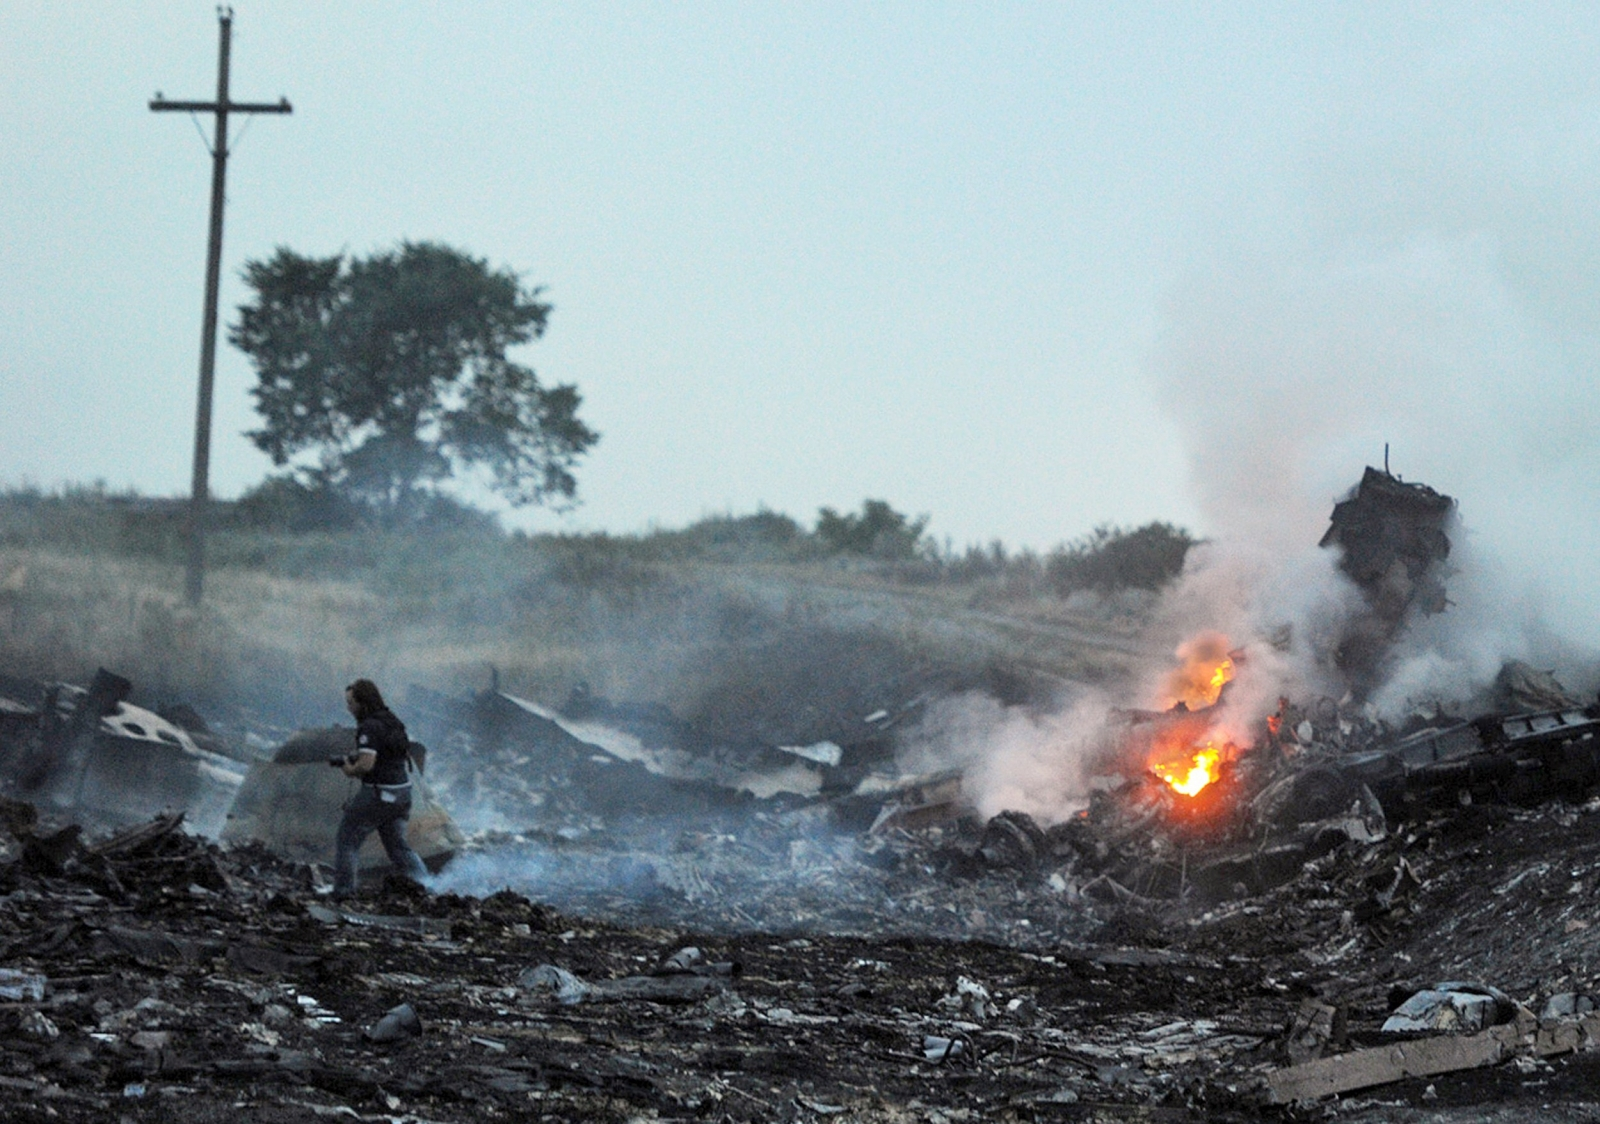 The wreckage of flight MH17